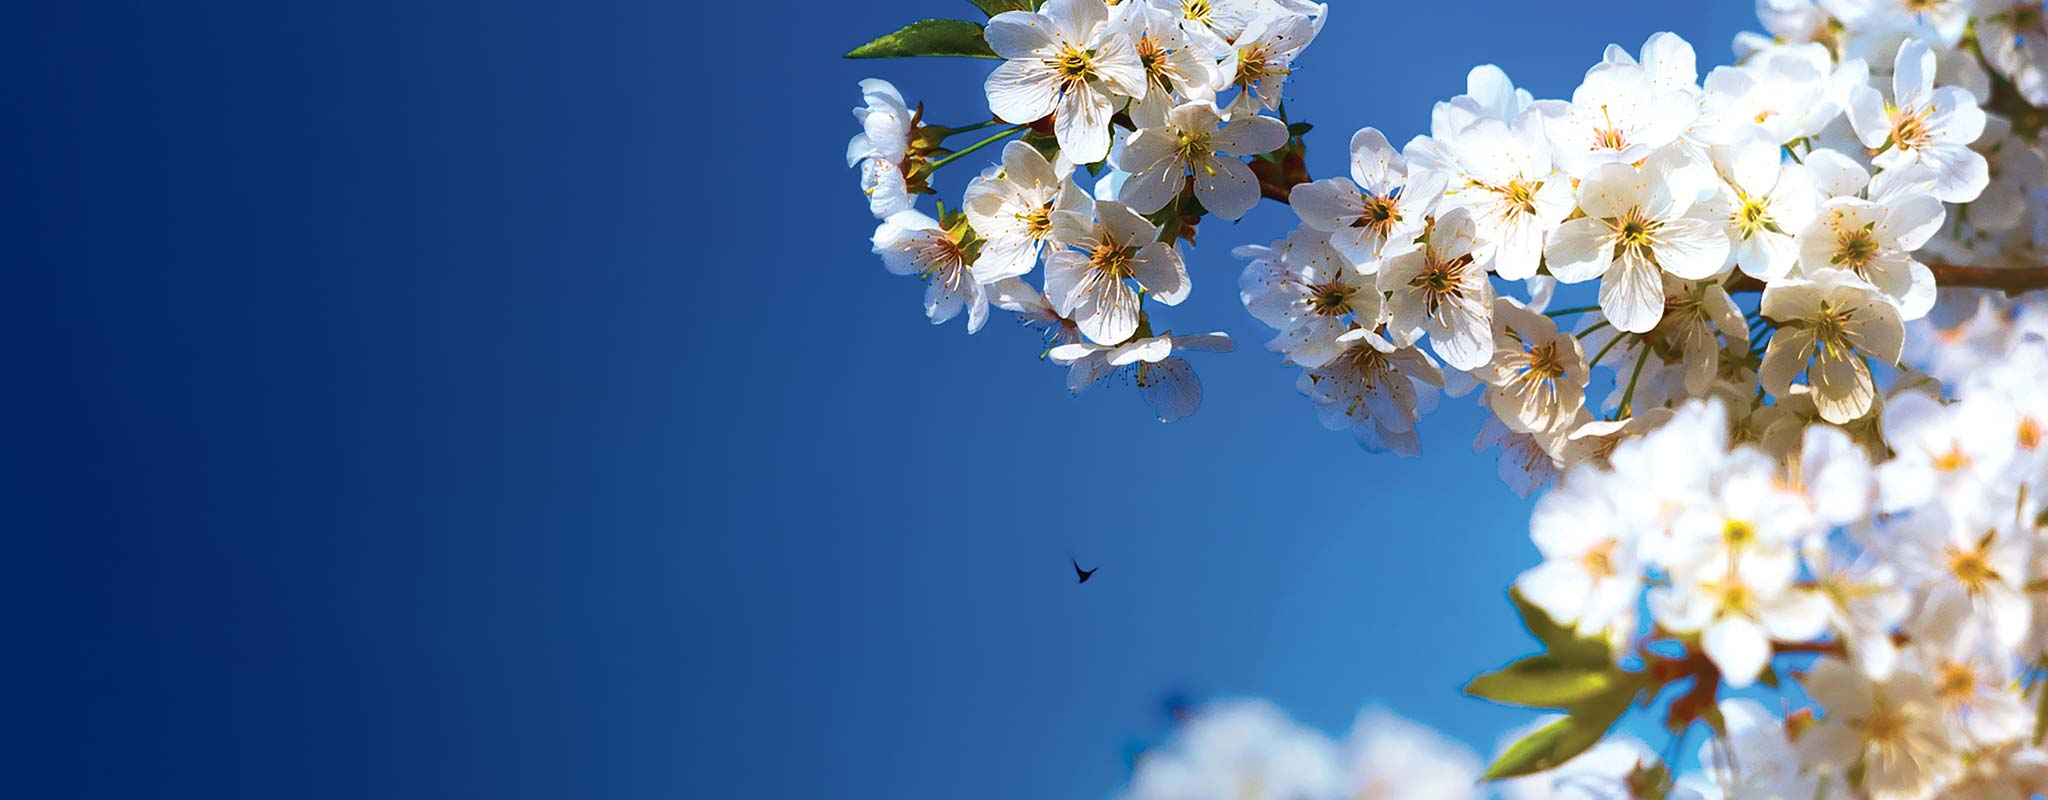 Cherry Blossom blooms with a blue sky background.